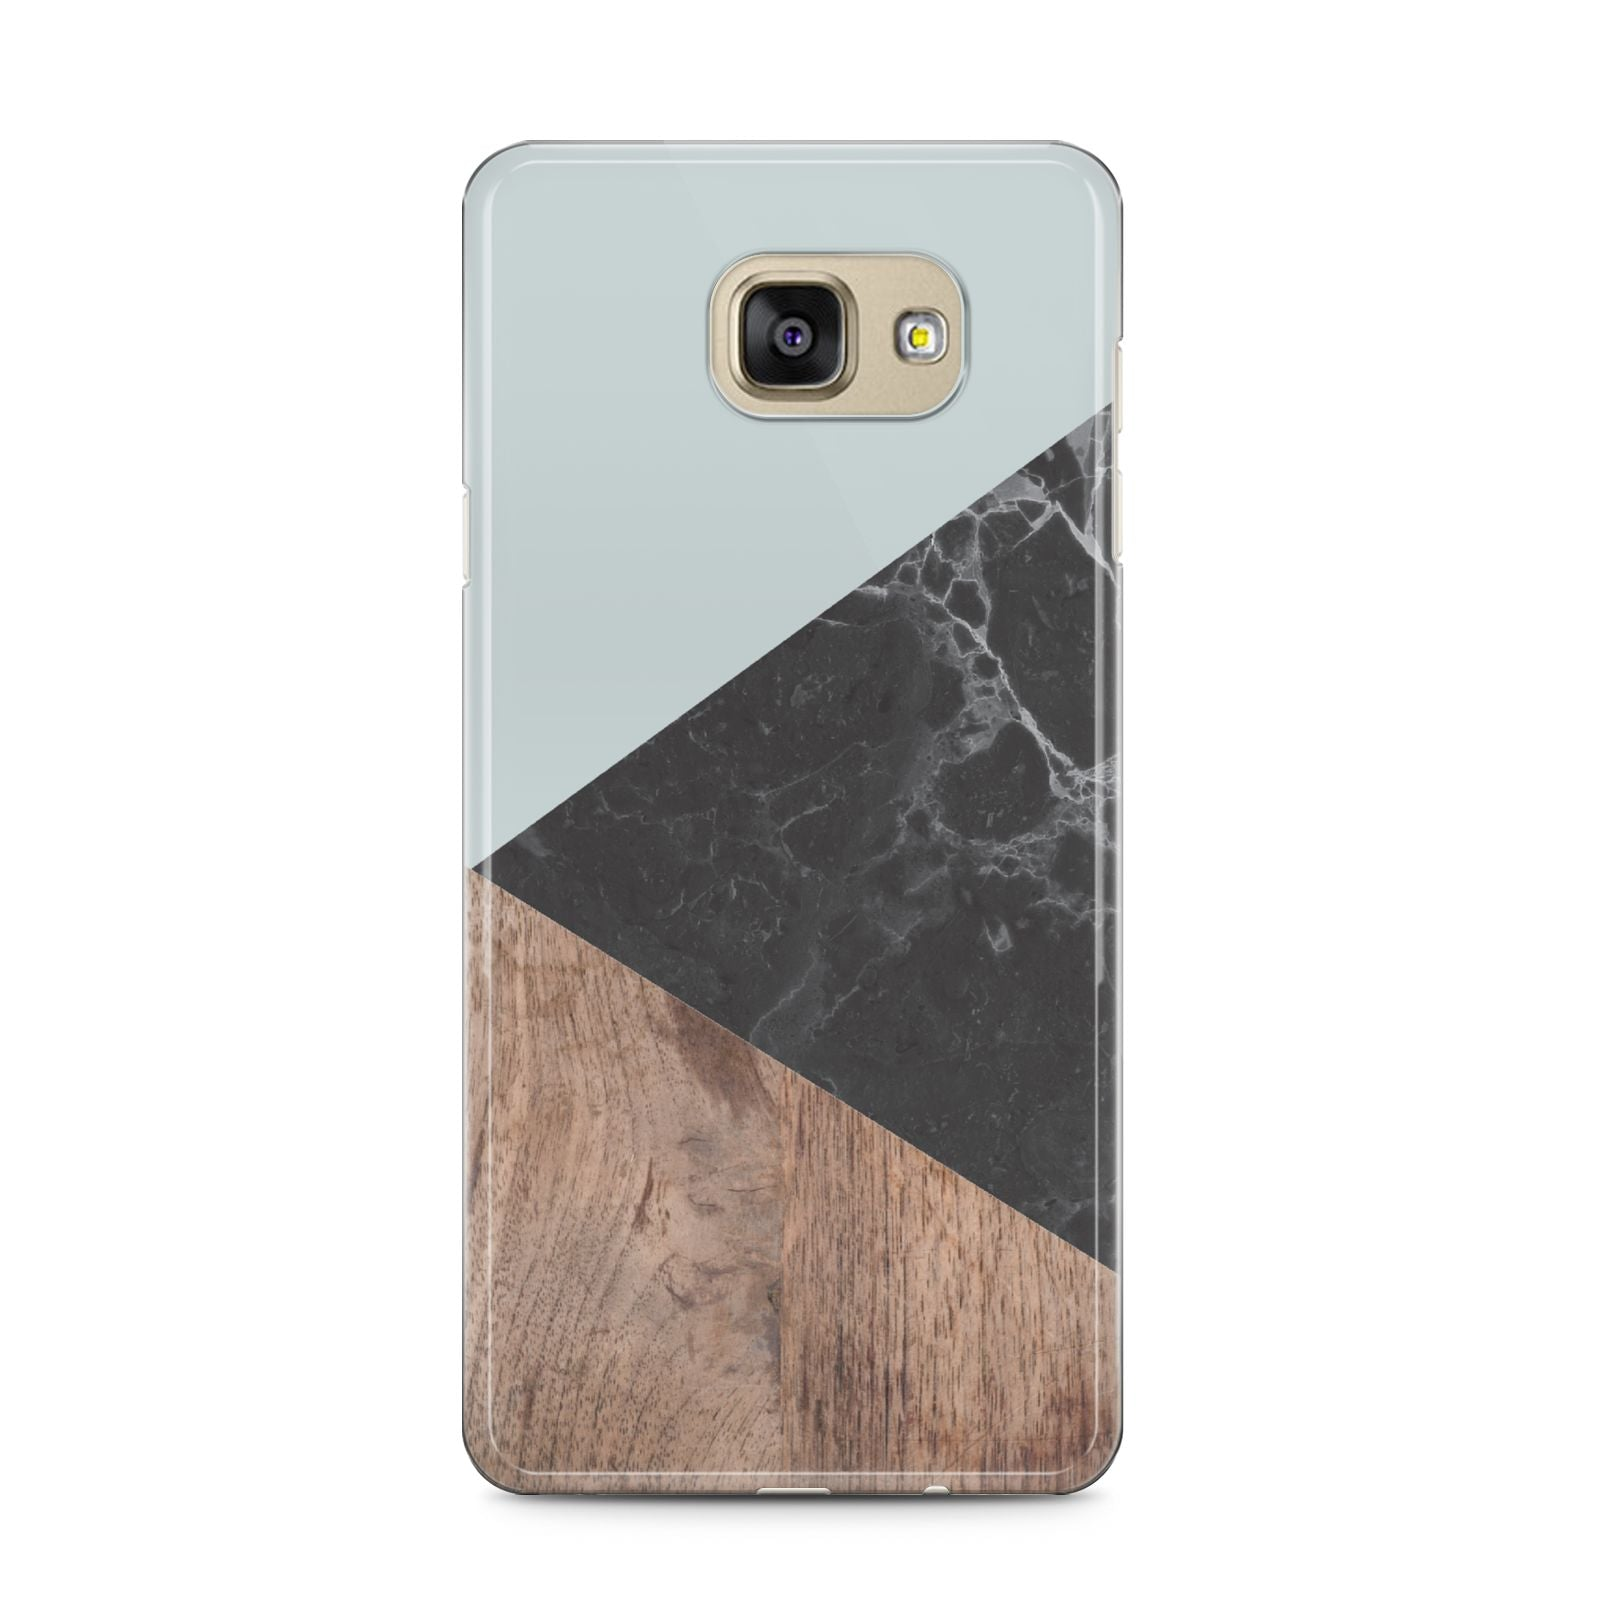 Marble Wood Geometric 2 Samsung Galaxy A5 2016 Case on gold phone